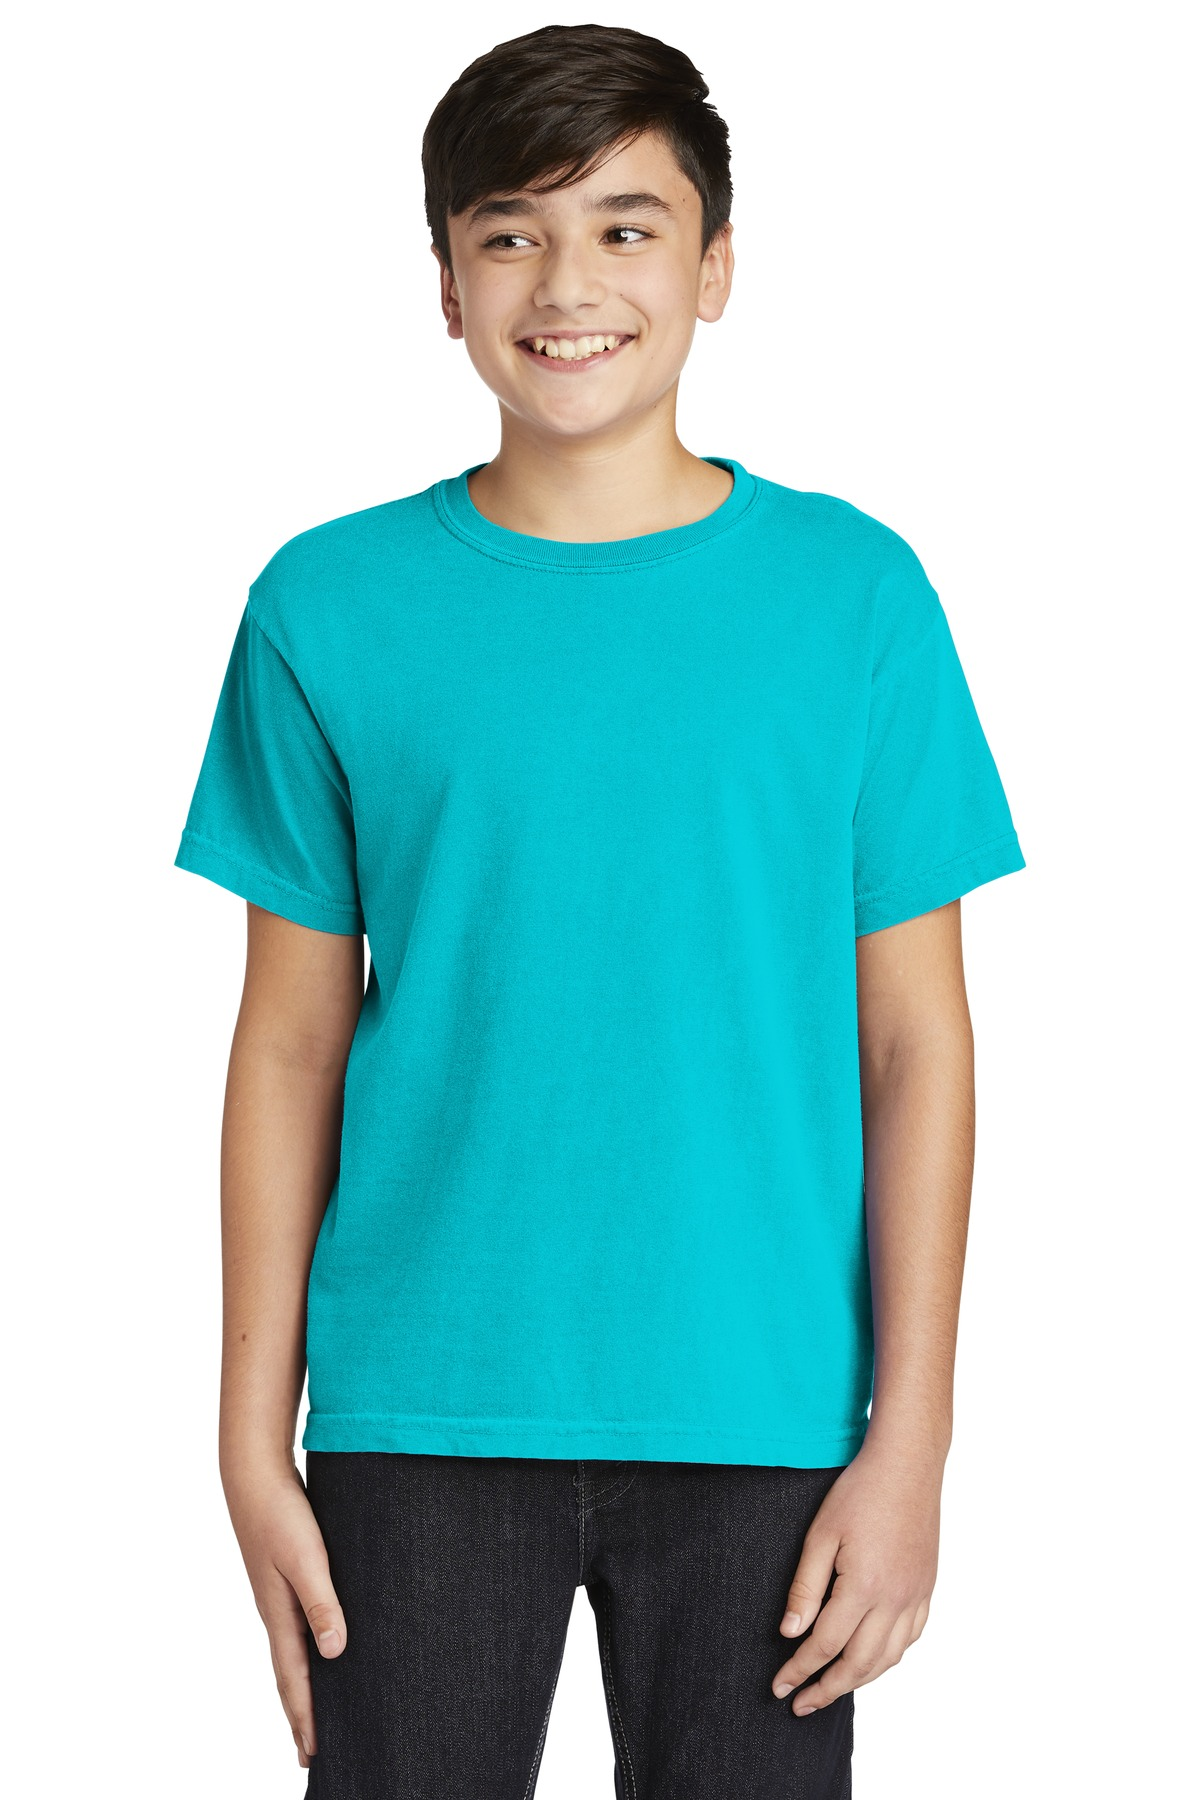 COMFORT COLORS  ®  Youth Midweight Ring Spun Tee. 9018 - Lagoon